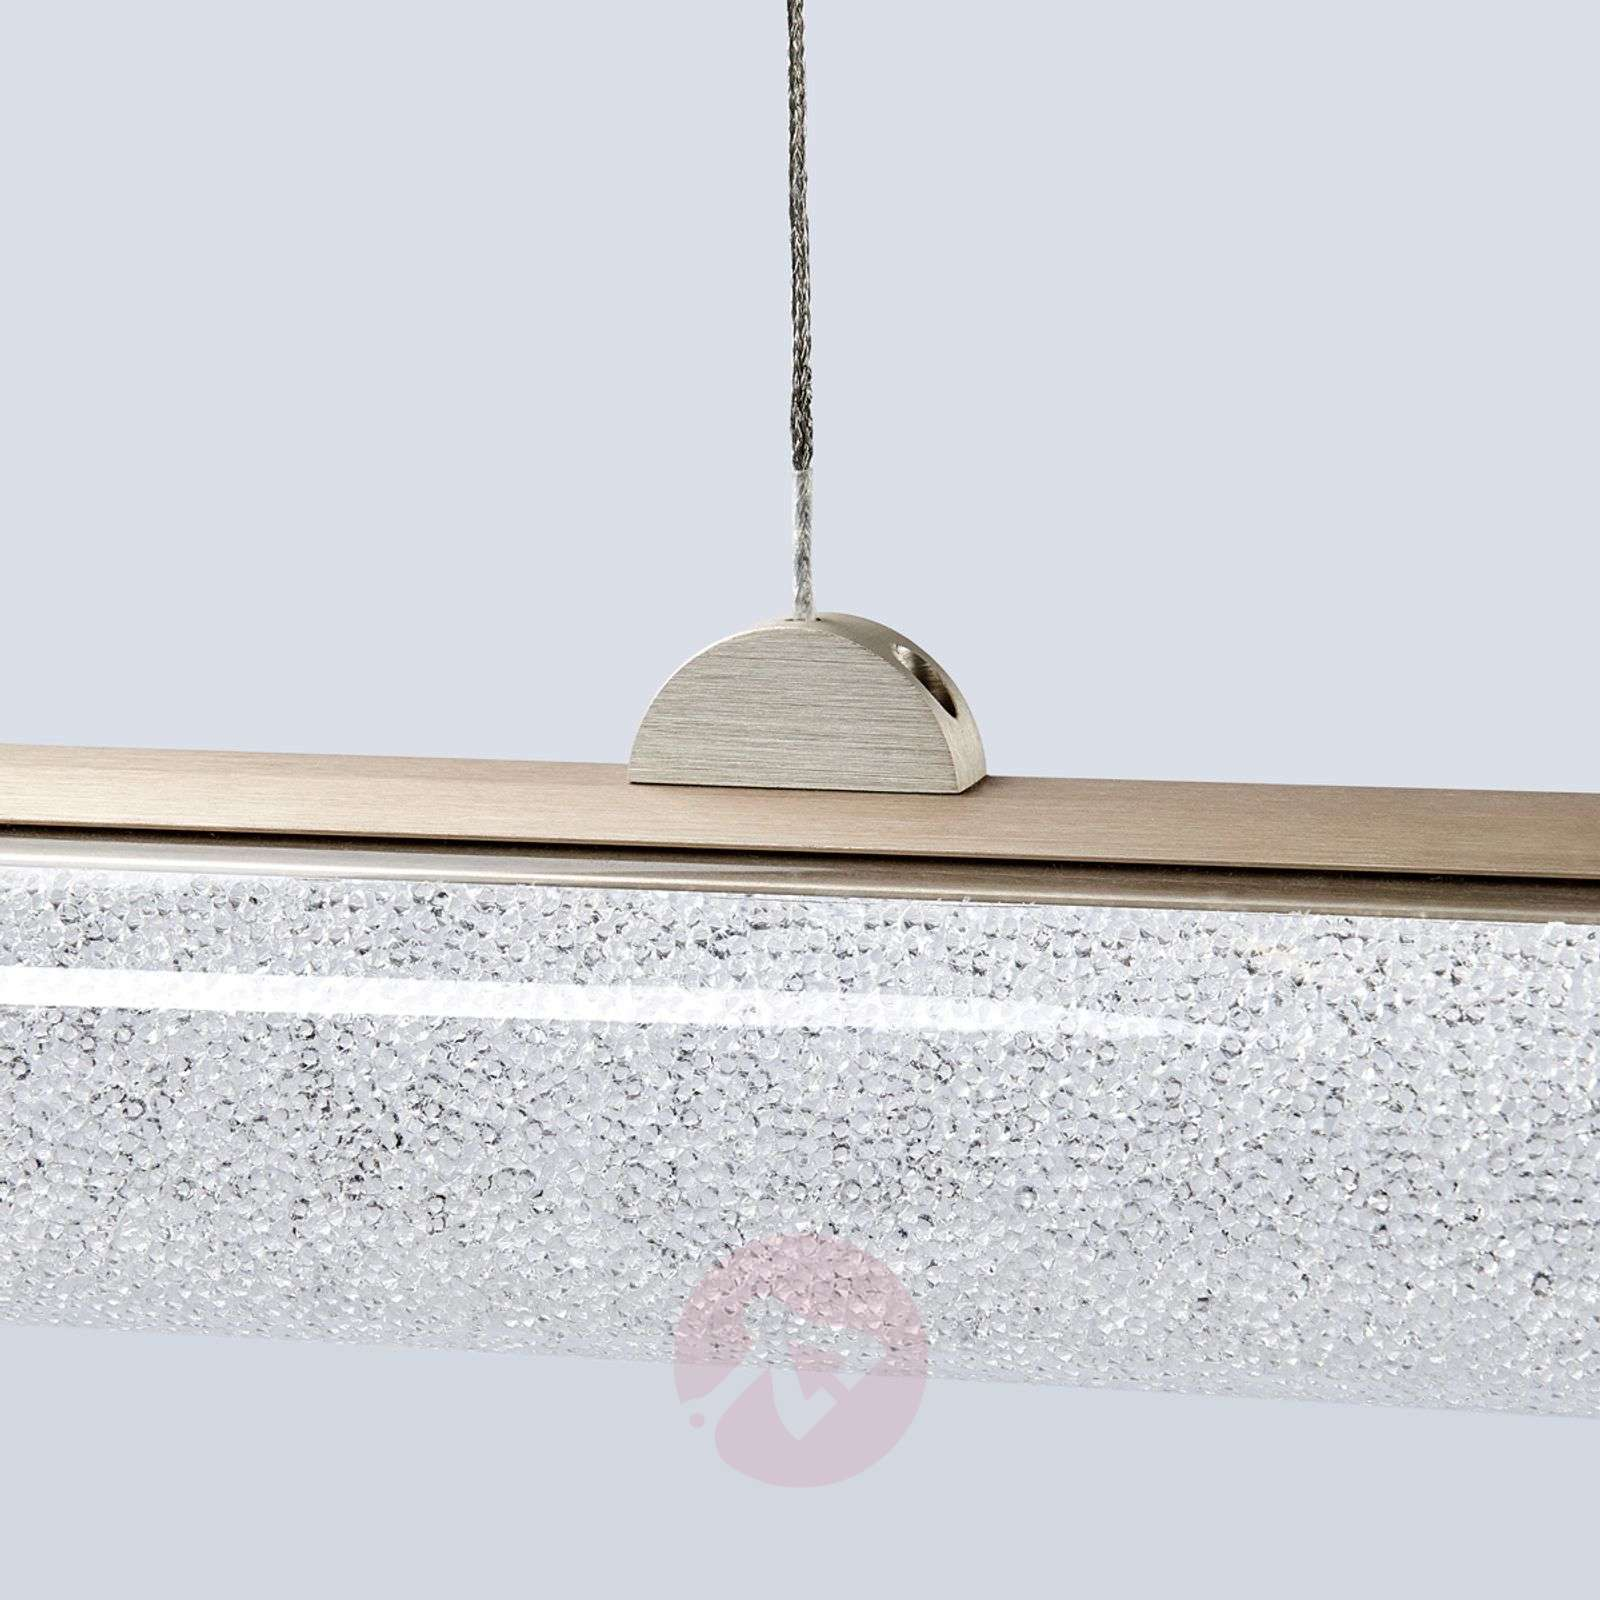 Suspension LED Cedric à hauteur ajustable-9640069-03